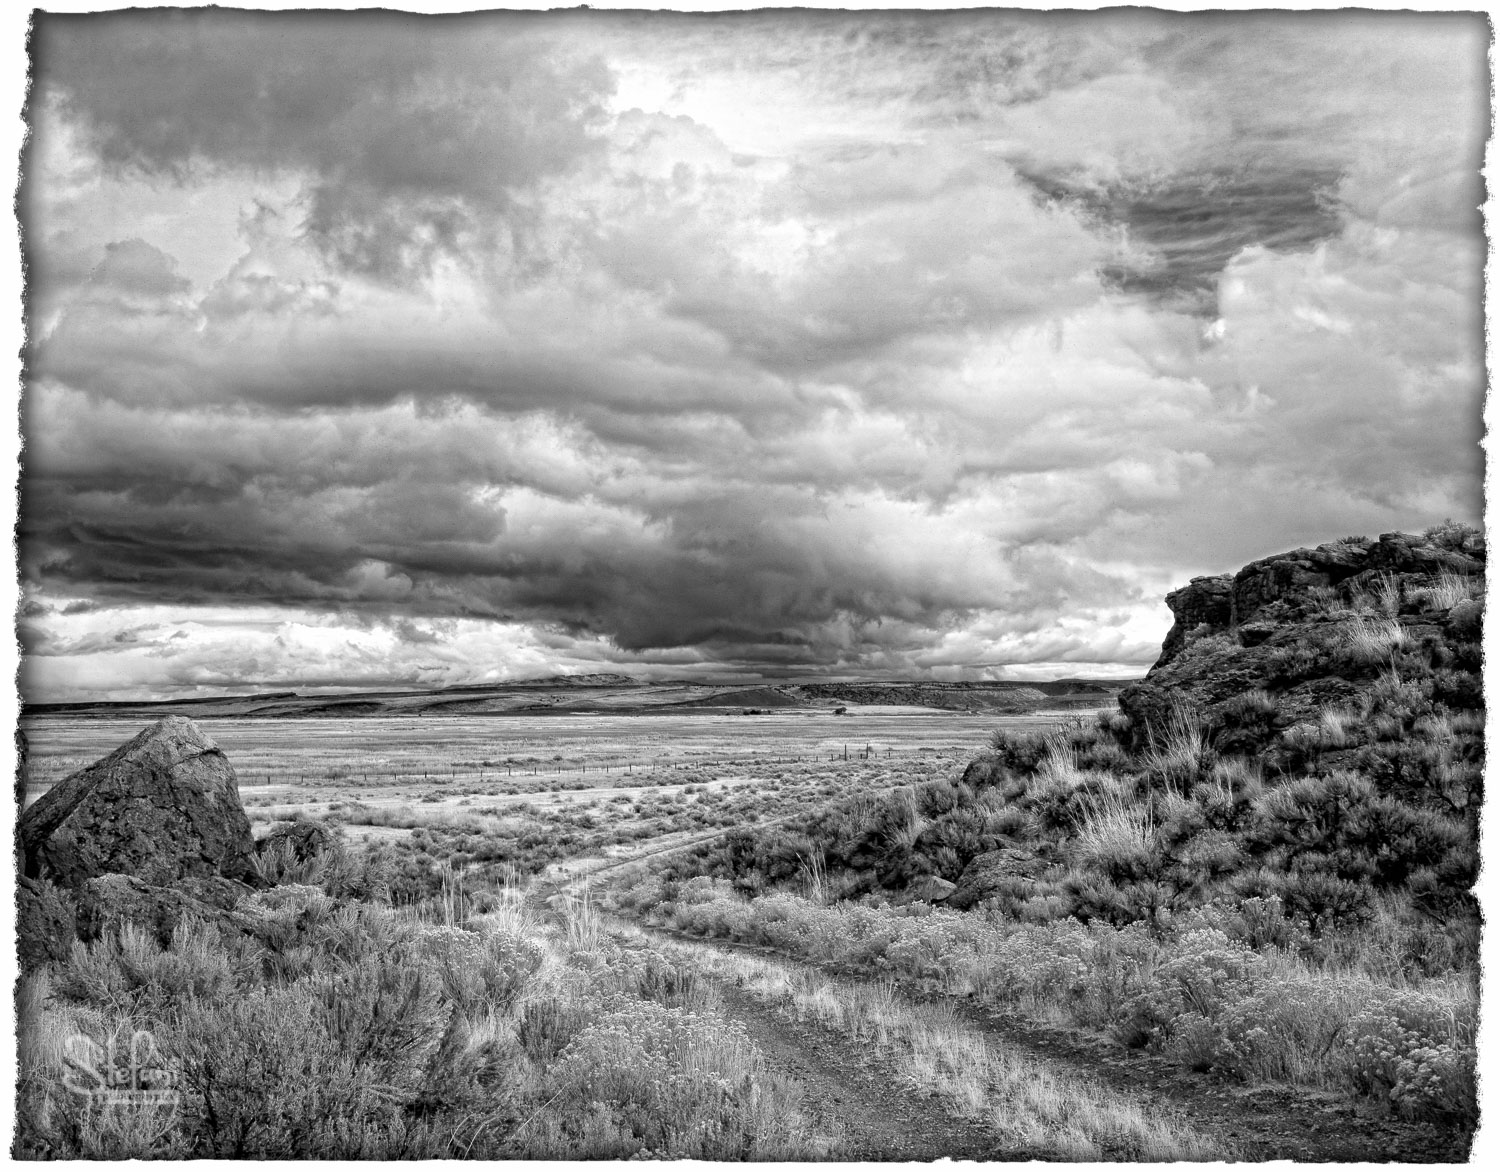 EASTERN OREGON STORM